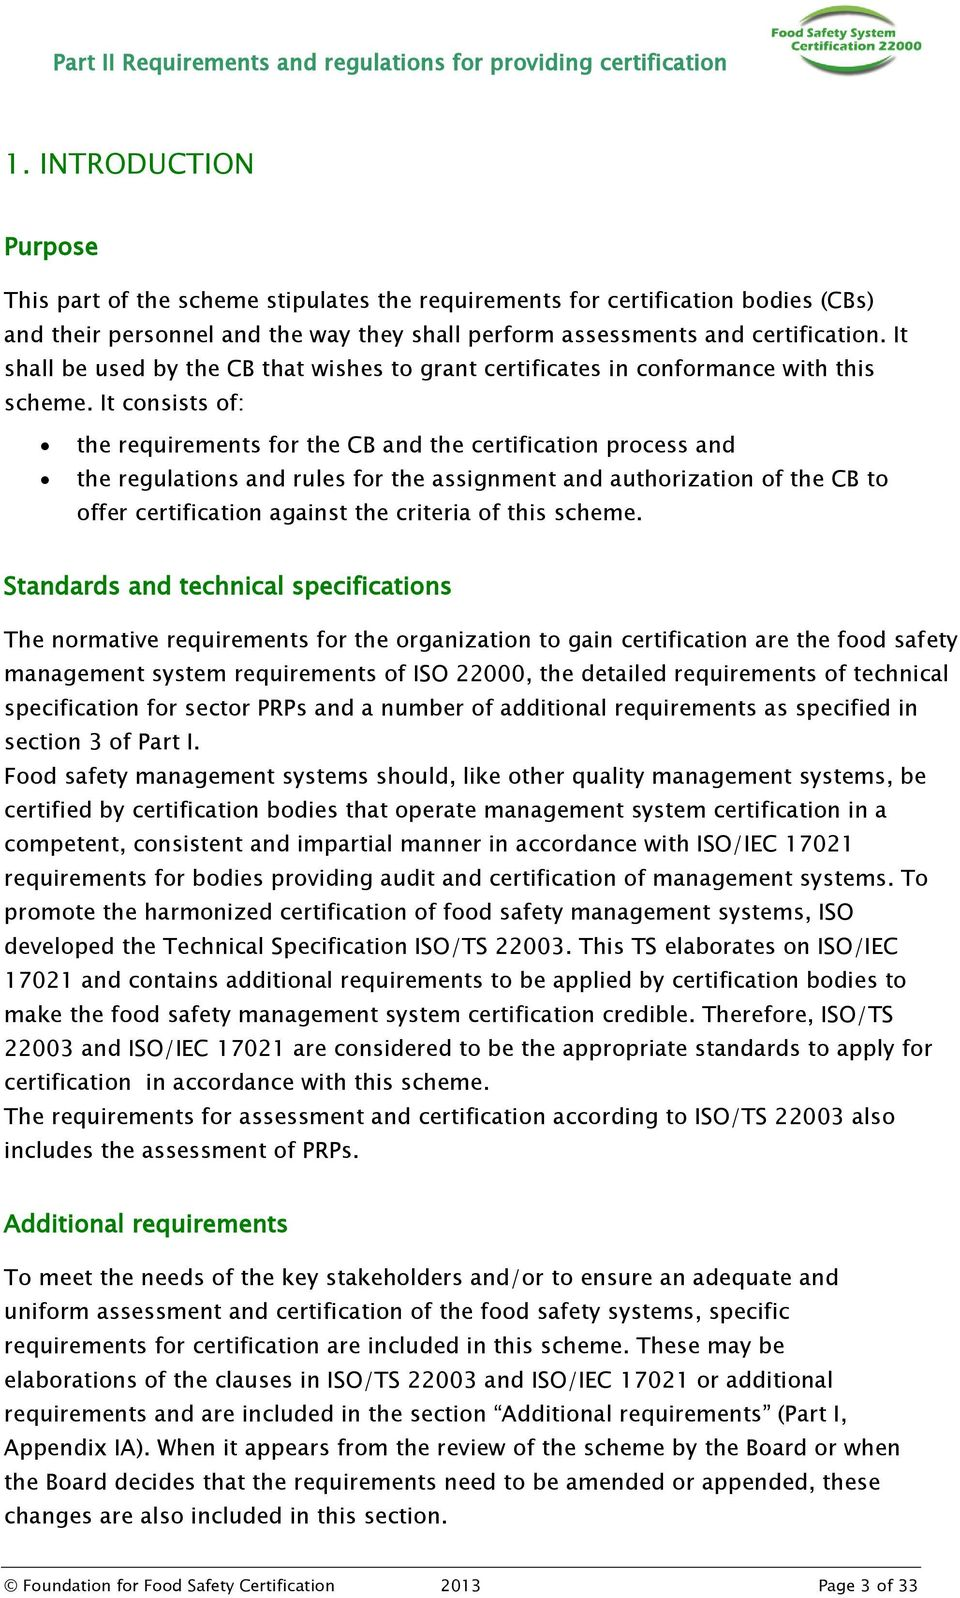 It consists of: the requirements for the CB and the certification process and the regulations and rules for the assignment and authorization of the CB to offer certification against the criteria of